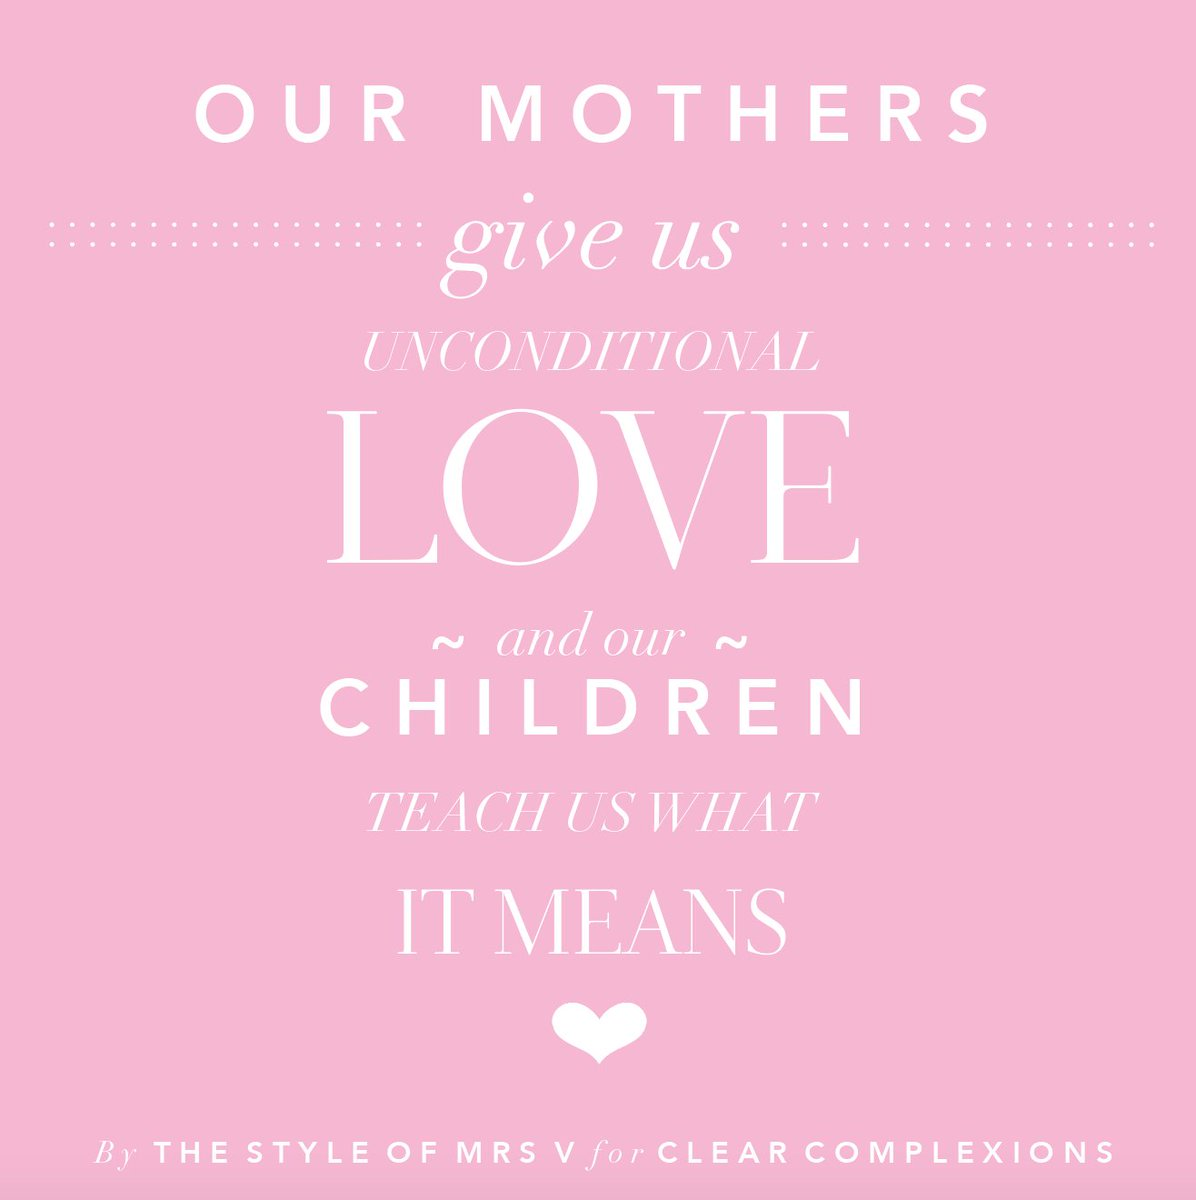 Suzie Hoitink On Twitter Our Mothers Give Us Unconditional Love And Our Children Teach Us What It Means Mothersday Quote Love